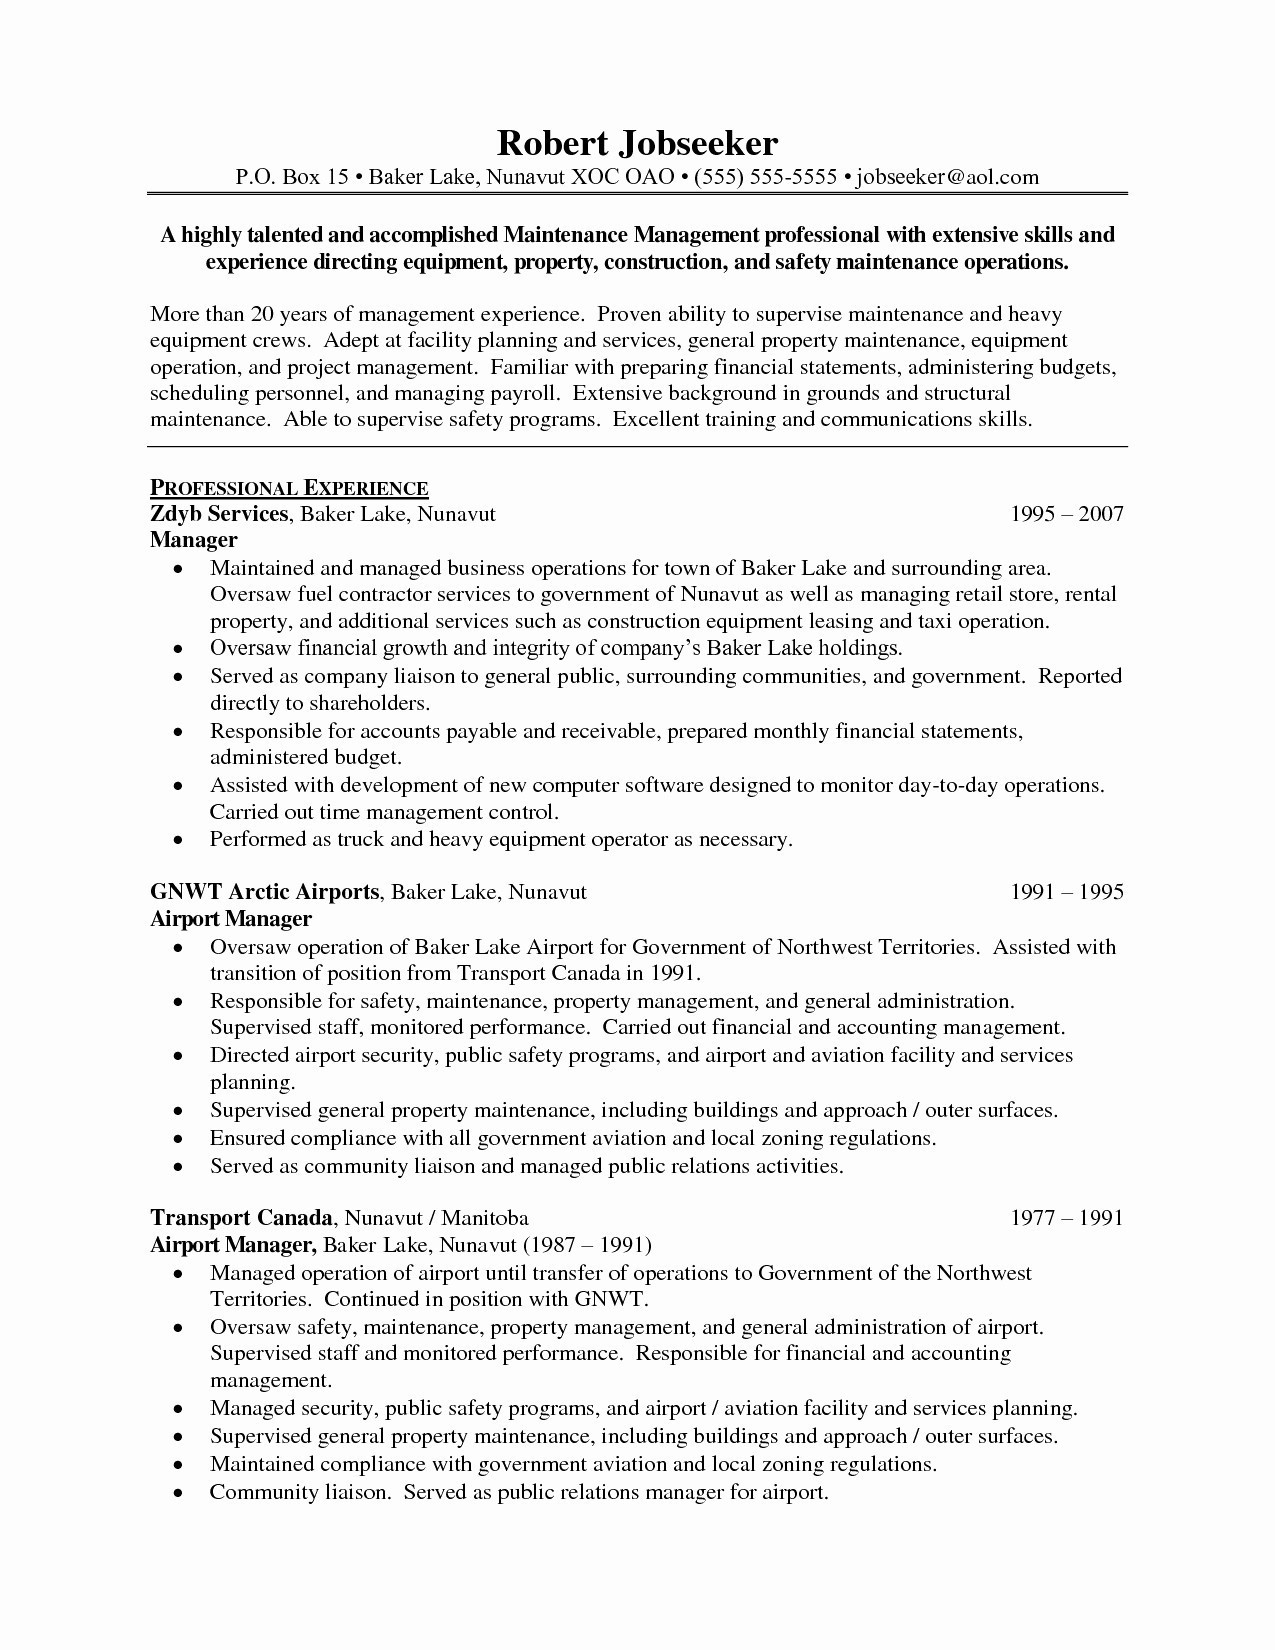 Project Management Resumes - New Project Manager Resume Samples